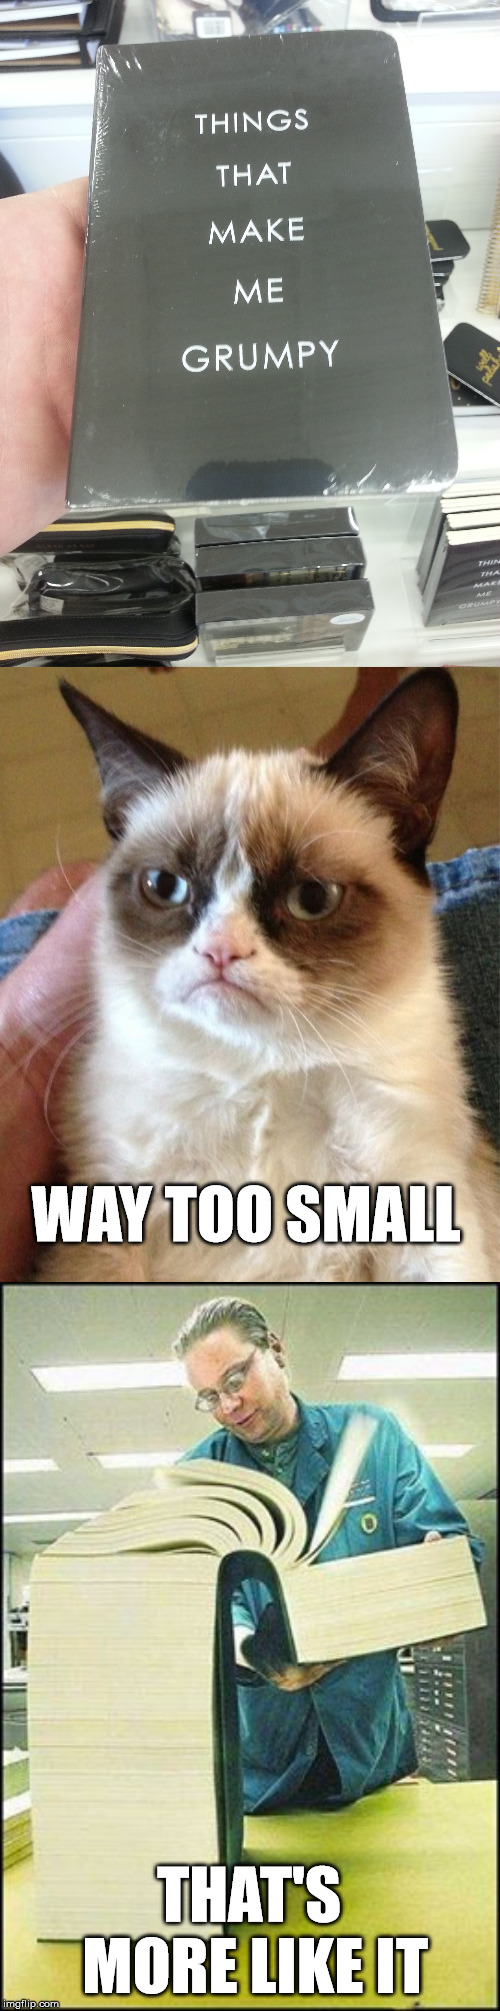 Things that make me grumpy | WAY TOO SMALL THAT'S MORE LIKE IT | image tagged in memes,grumpy cat | made w/ Imgflip meme maker